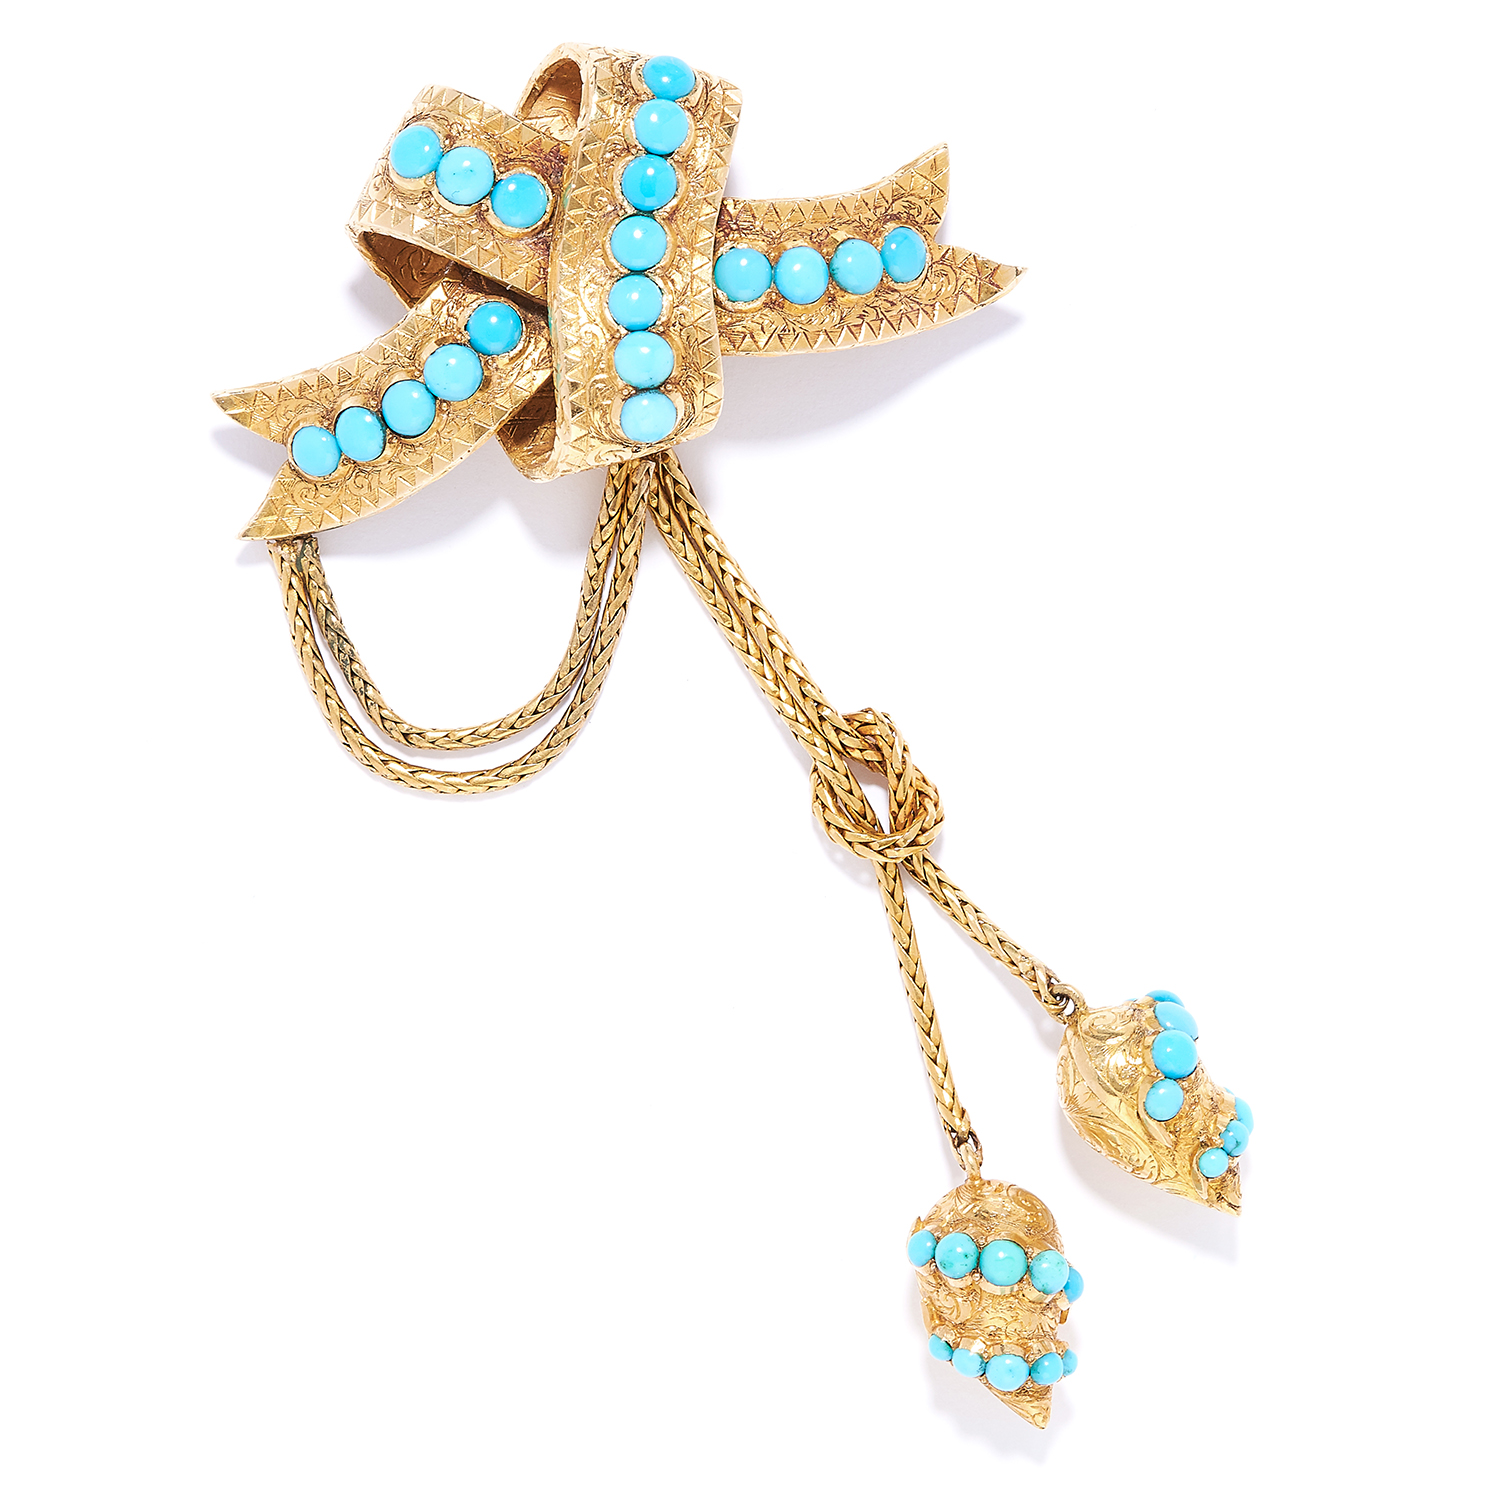 ANTIQUE TURQUOISE HAIRWORK MORNING BROOCH, 19TH CENTURY in high carat yellow gold, designed as a bow